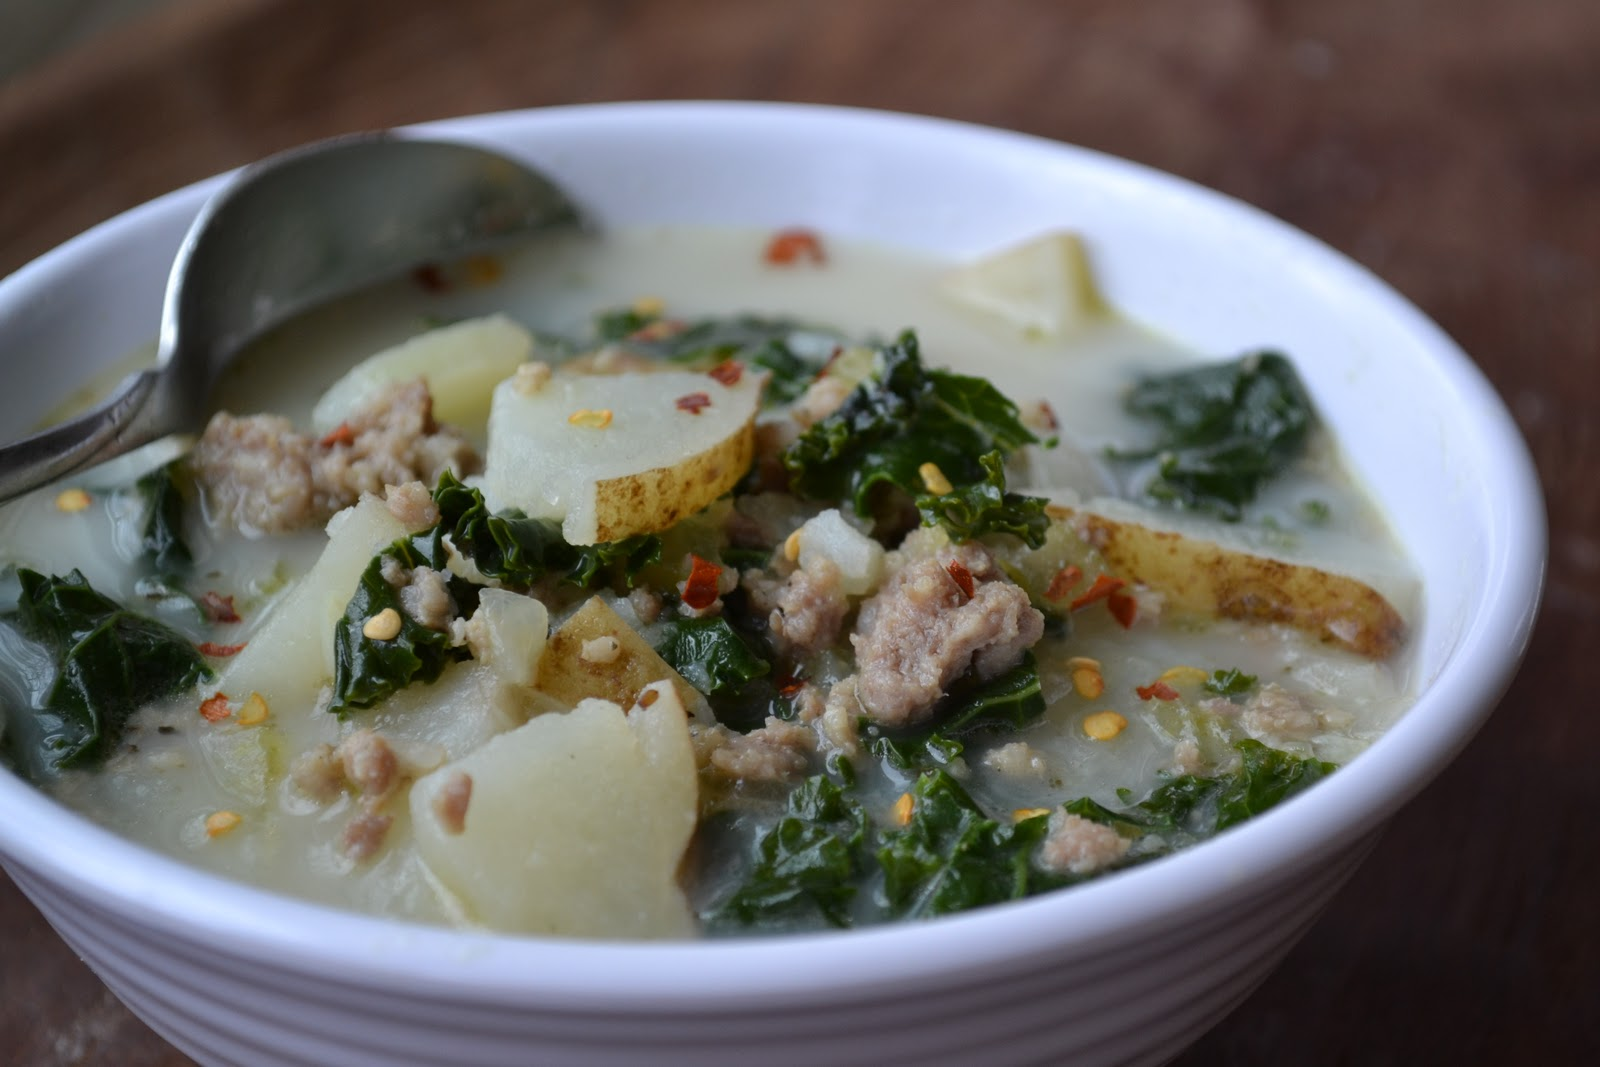 Sausage potato and kale soup recipe dishmaps for Olive garden potato sausage kale soup recipe